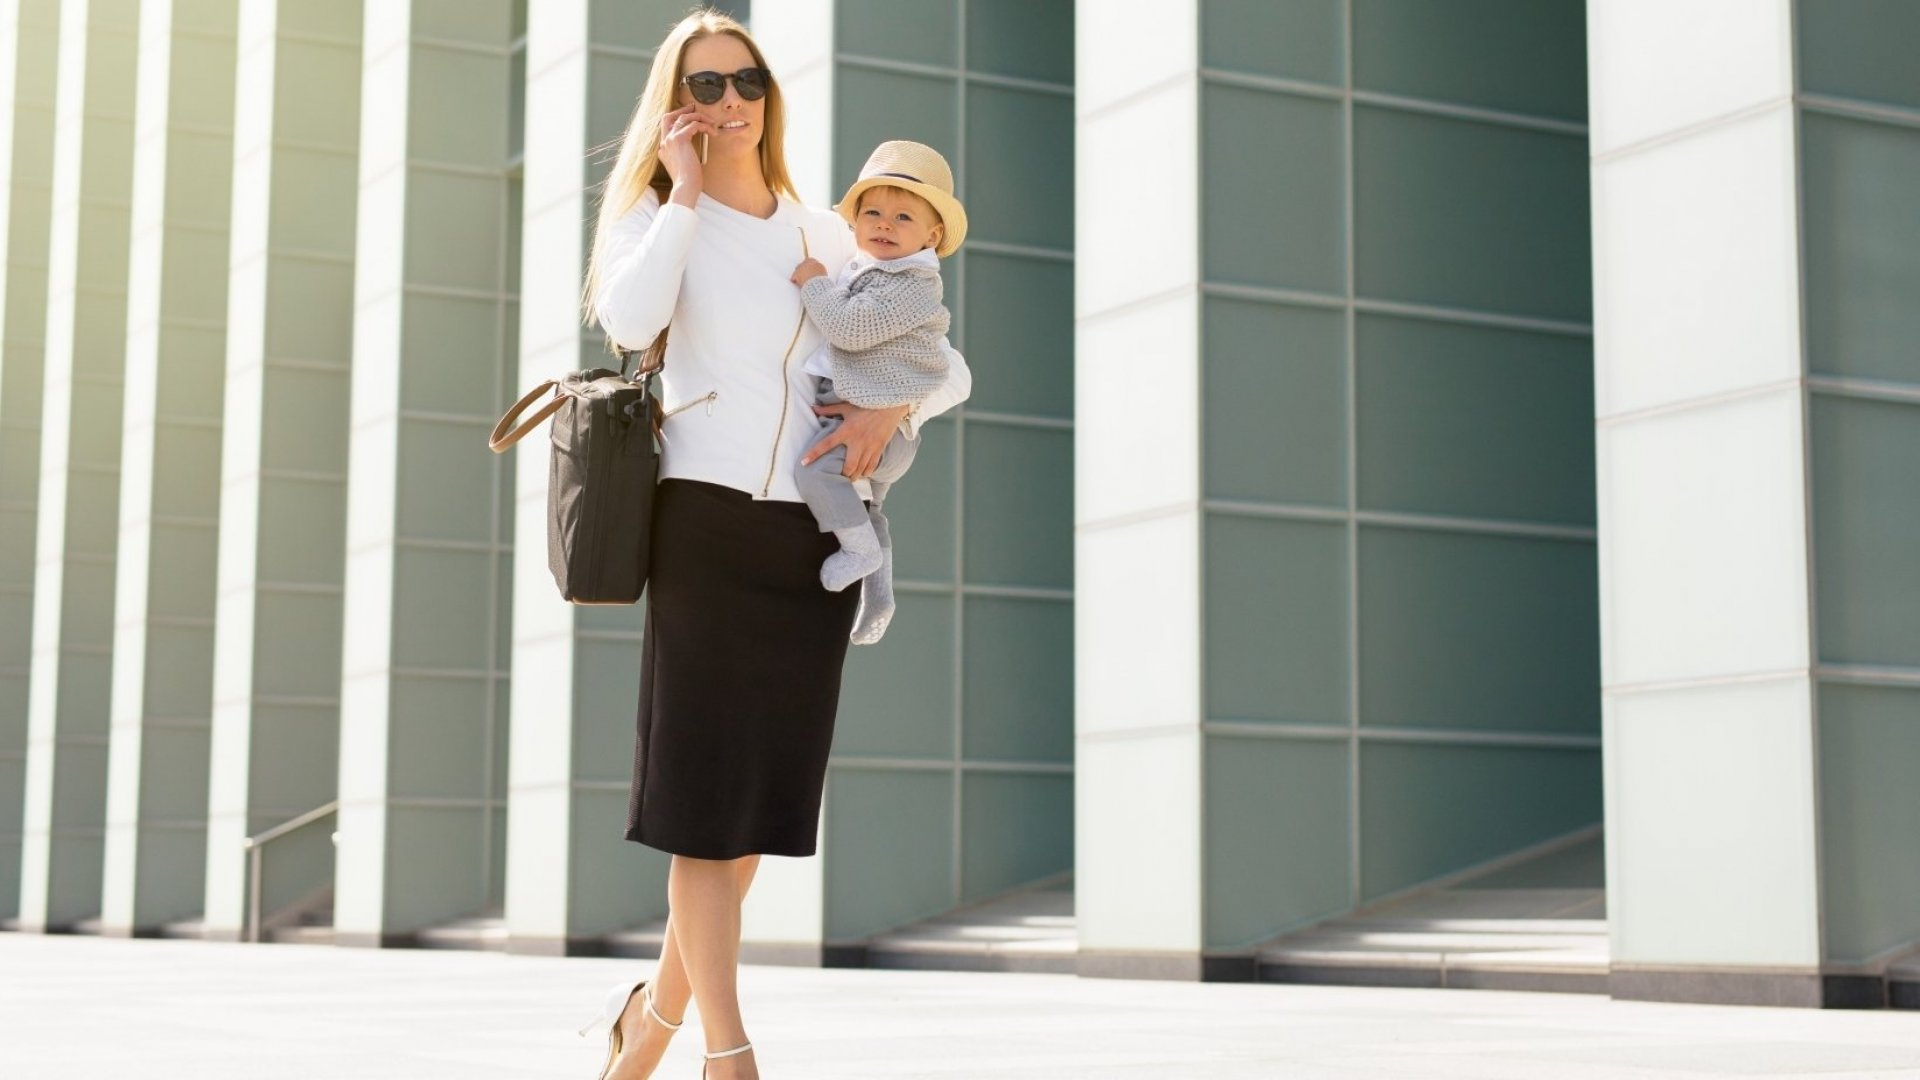 Does Your Company Do Enough to Support Working Parents? Four Factors to Consider